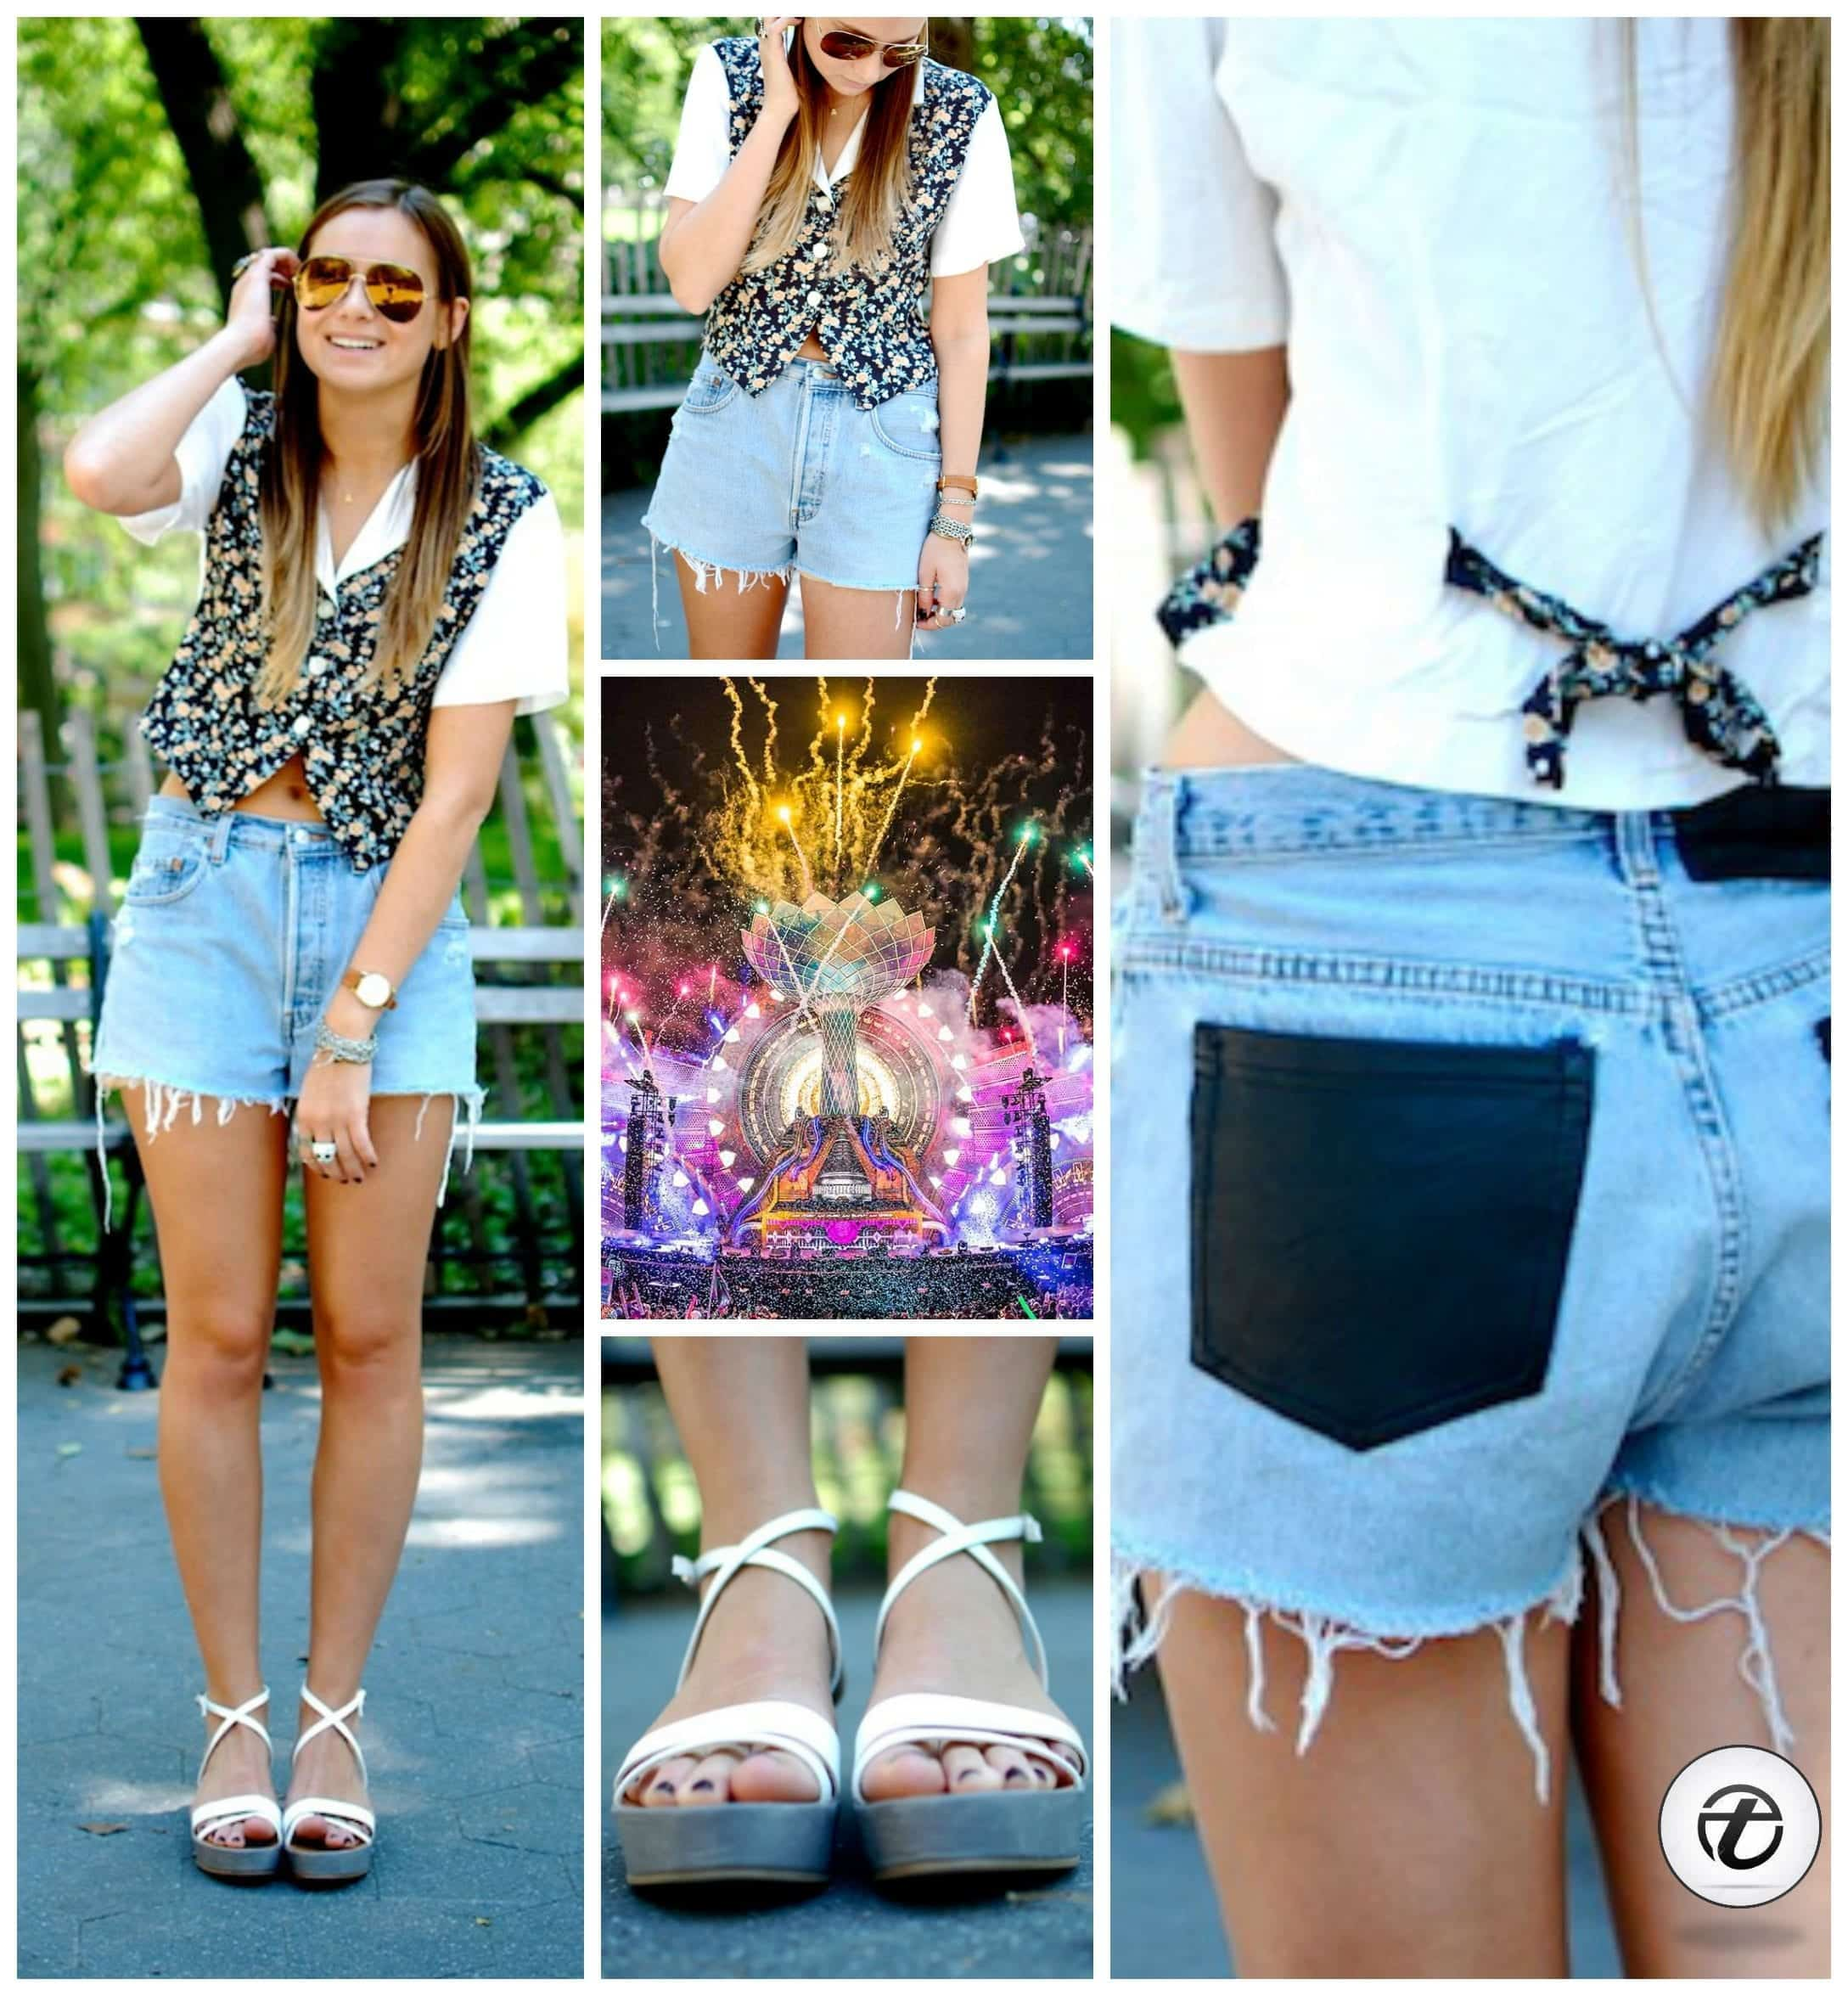 music-carnival-outfit Girls Carnival Outfits Ideas-15 Outfits to Wear at Carnival